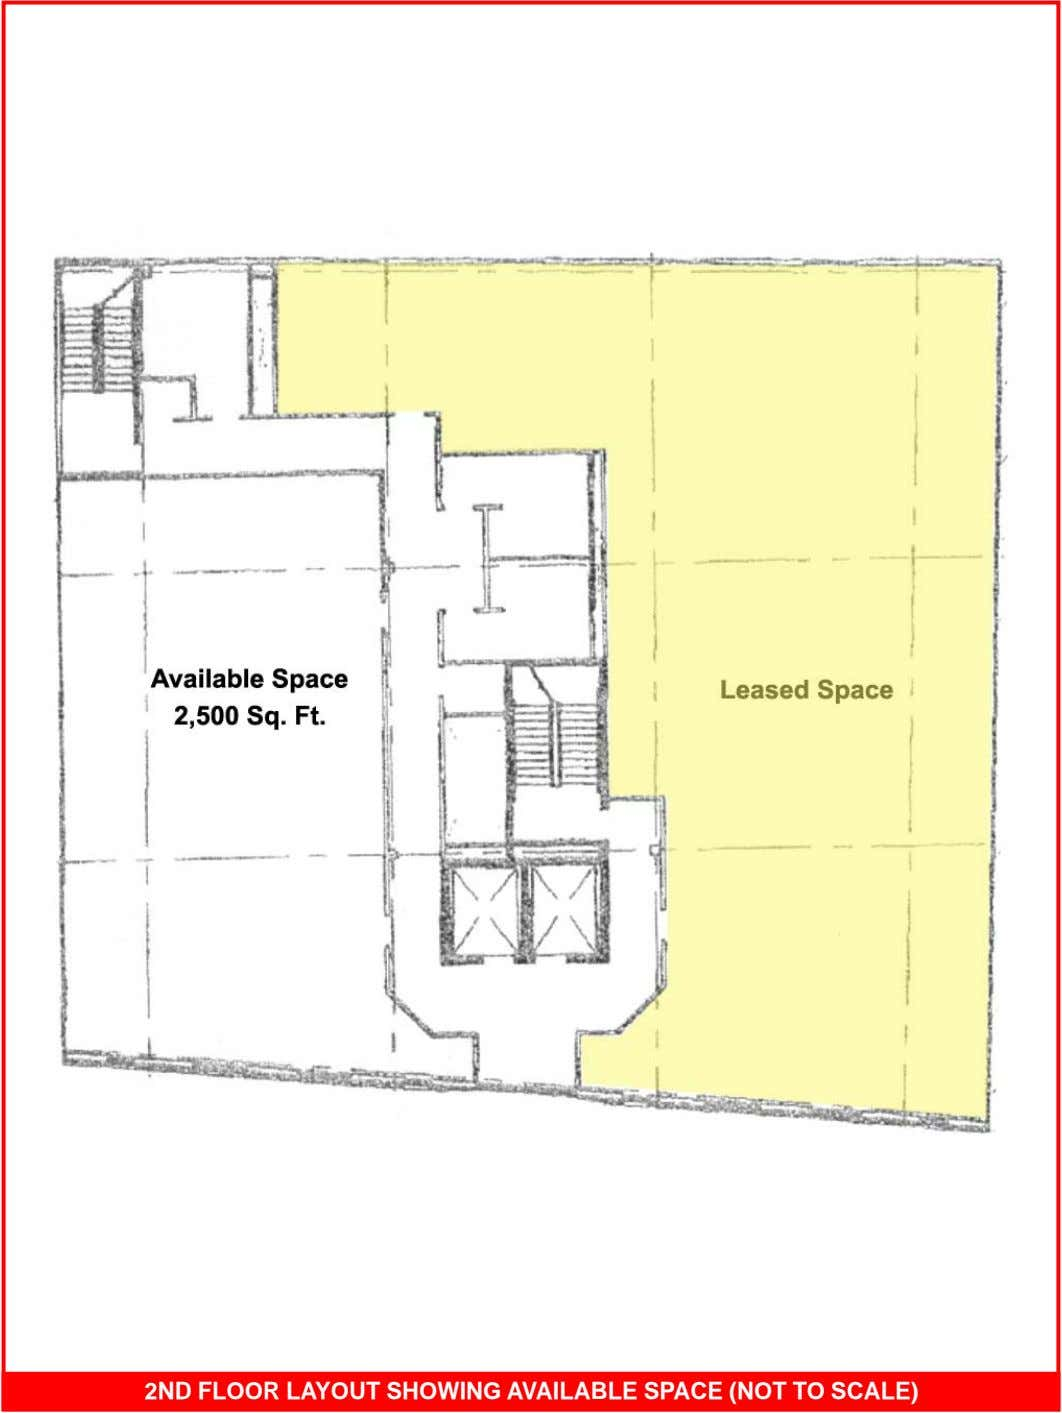 2ND FLOOR LAYOUT SHOWING AVAILABLE SPACE (NOT TO SCALE)